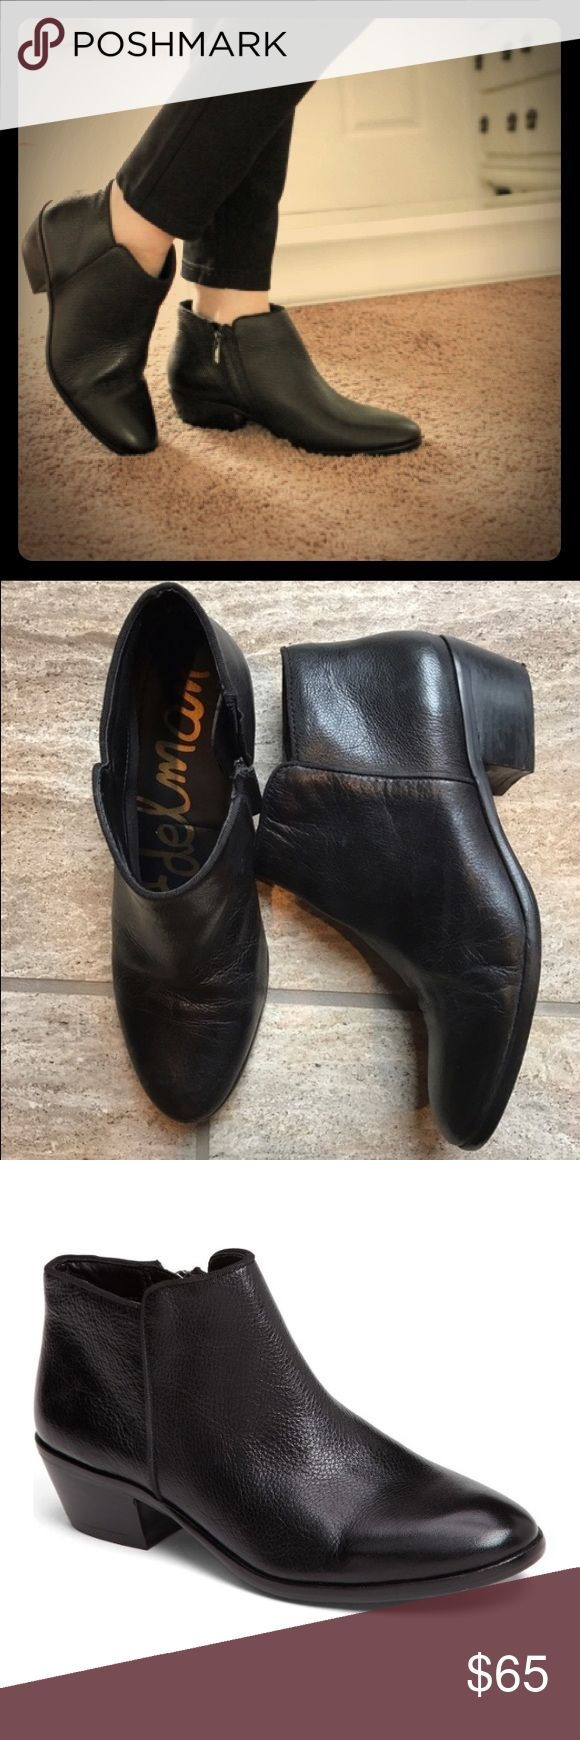 Sam Edelman Petty Chelsea Ankle Boot Sam Edelman Petty Chelsea Ankle Boot in black leather. Worn ONCE! Popular and stylish with very high-ratings! Make an offer! Sam Edelman Shoes Ankle Boots & Booties